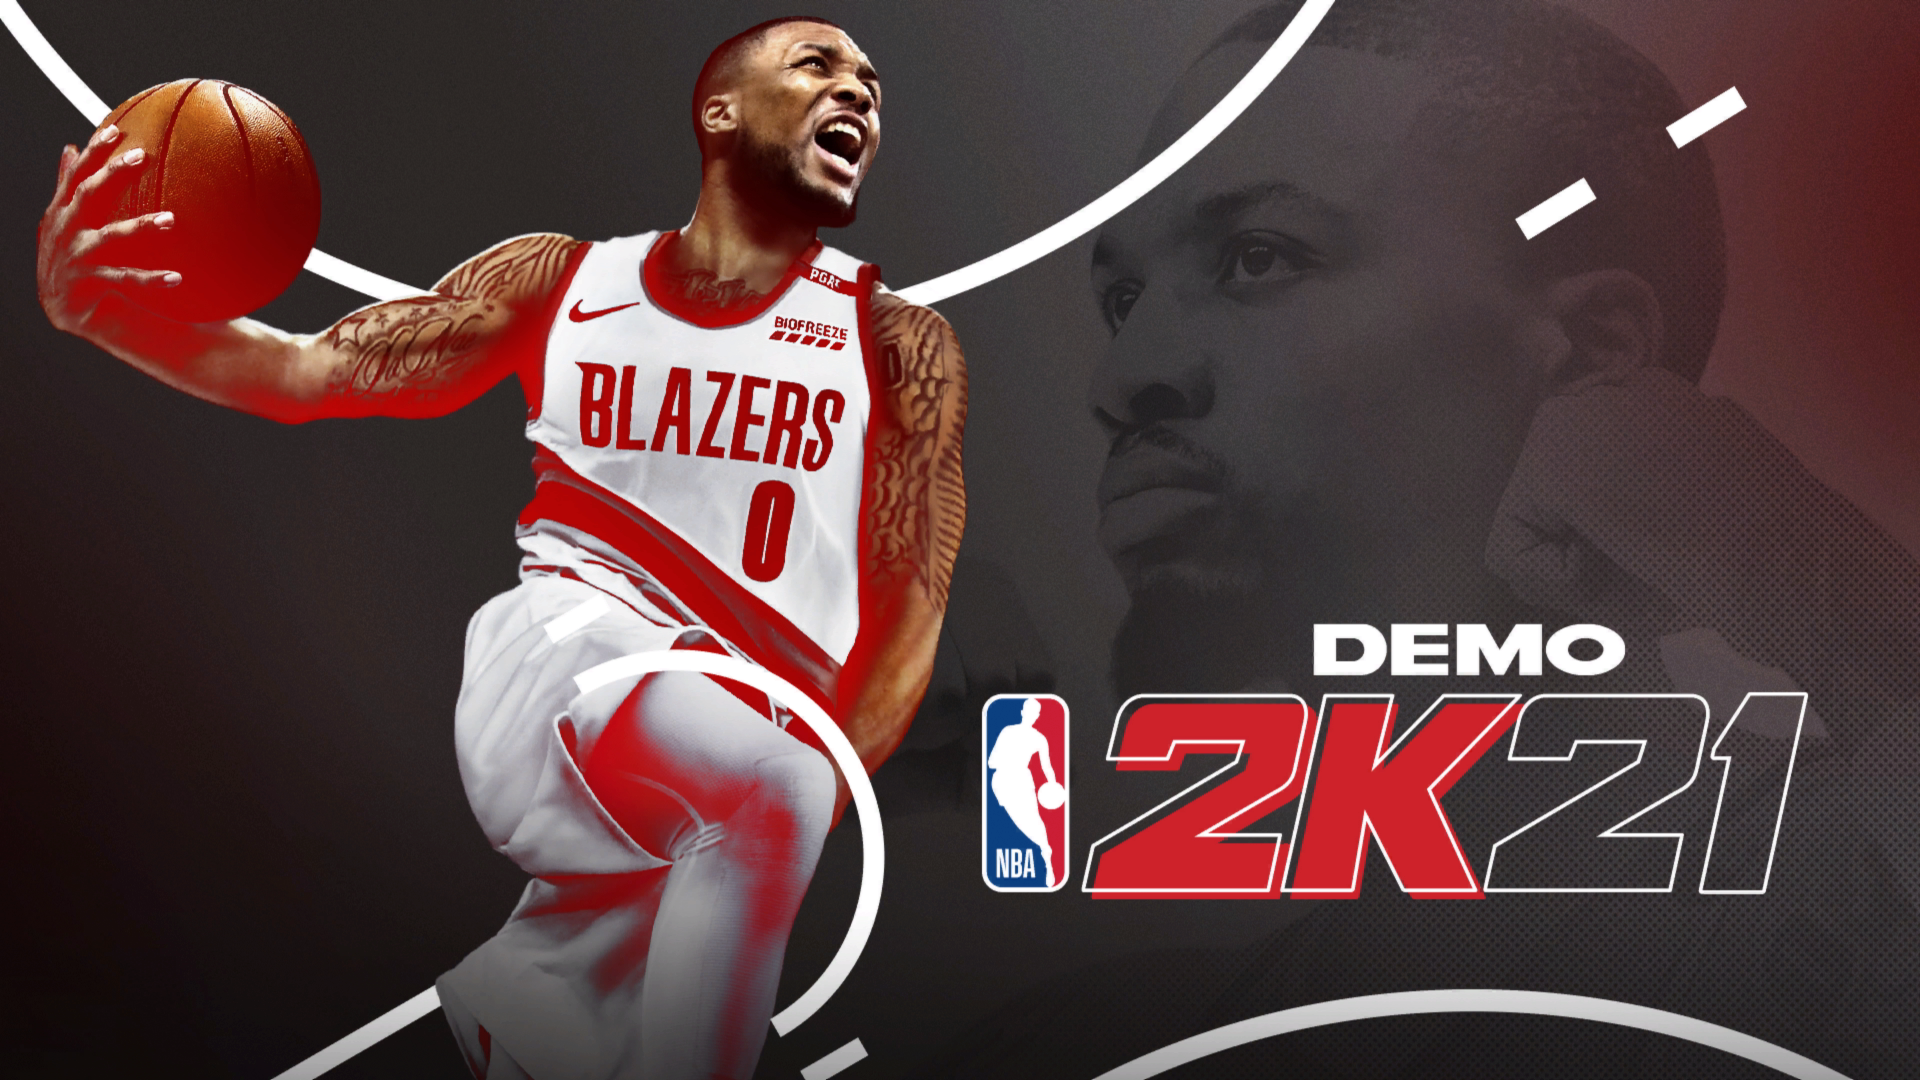 Nba 2k21 Trailer Plot News Myteam Everything You Need To Know Nba Streaming Movies Online Full Movies Online Free